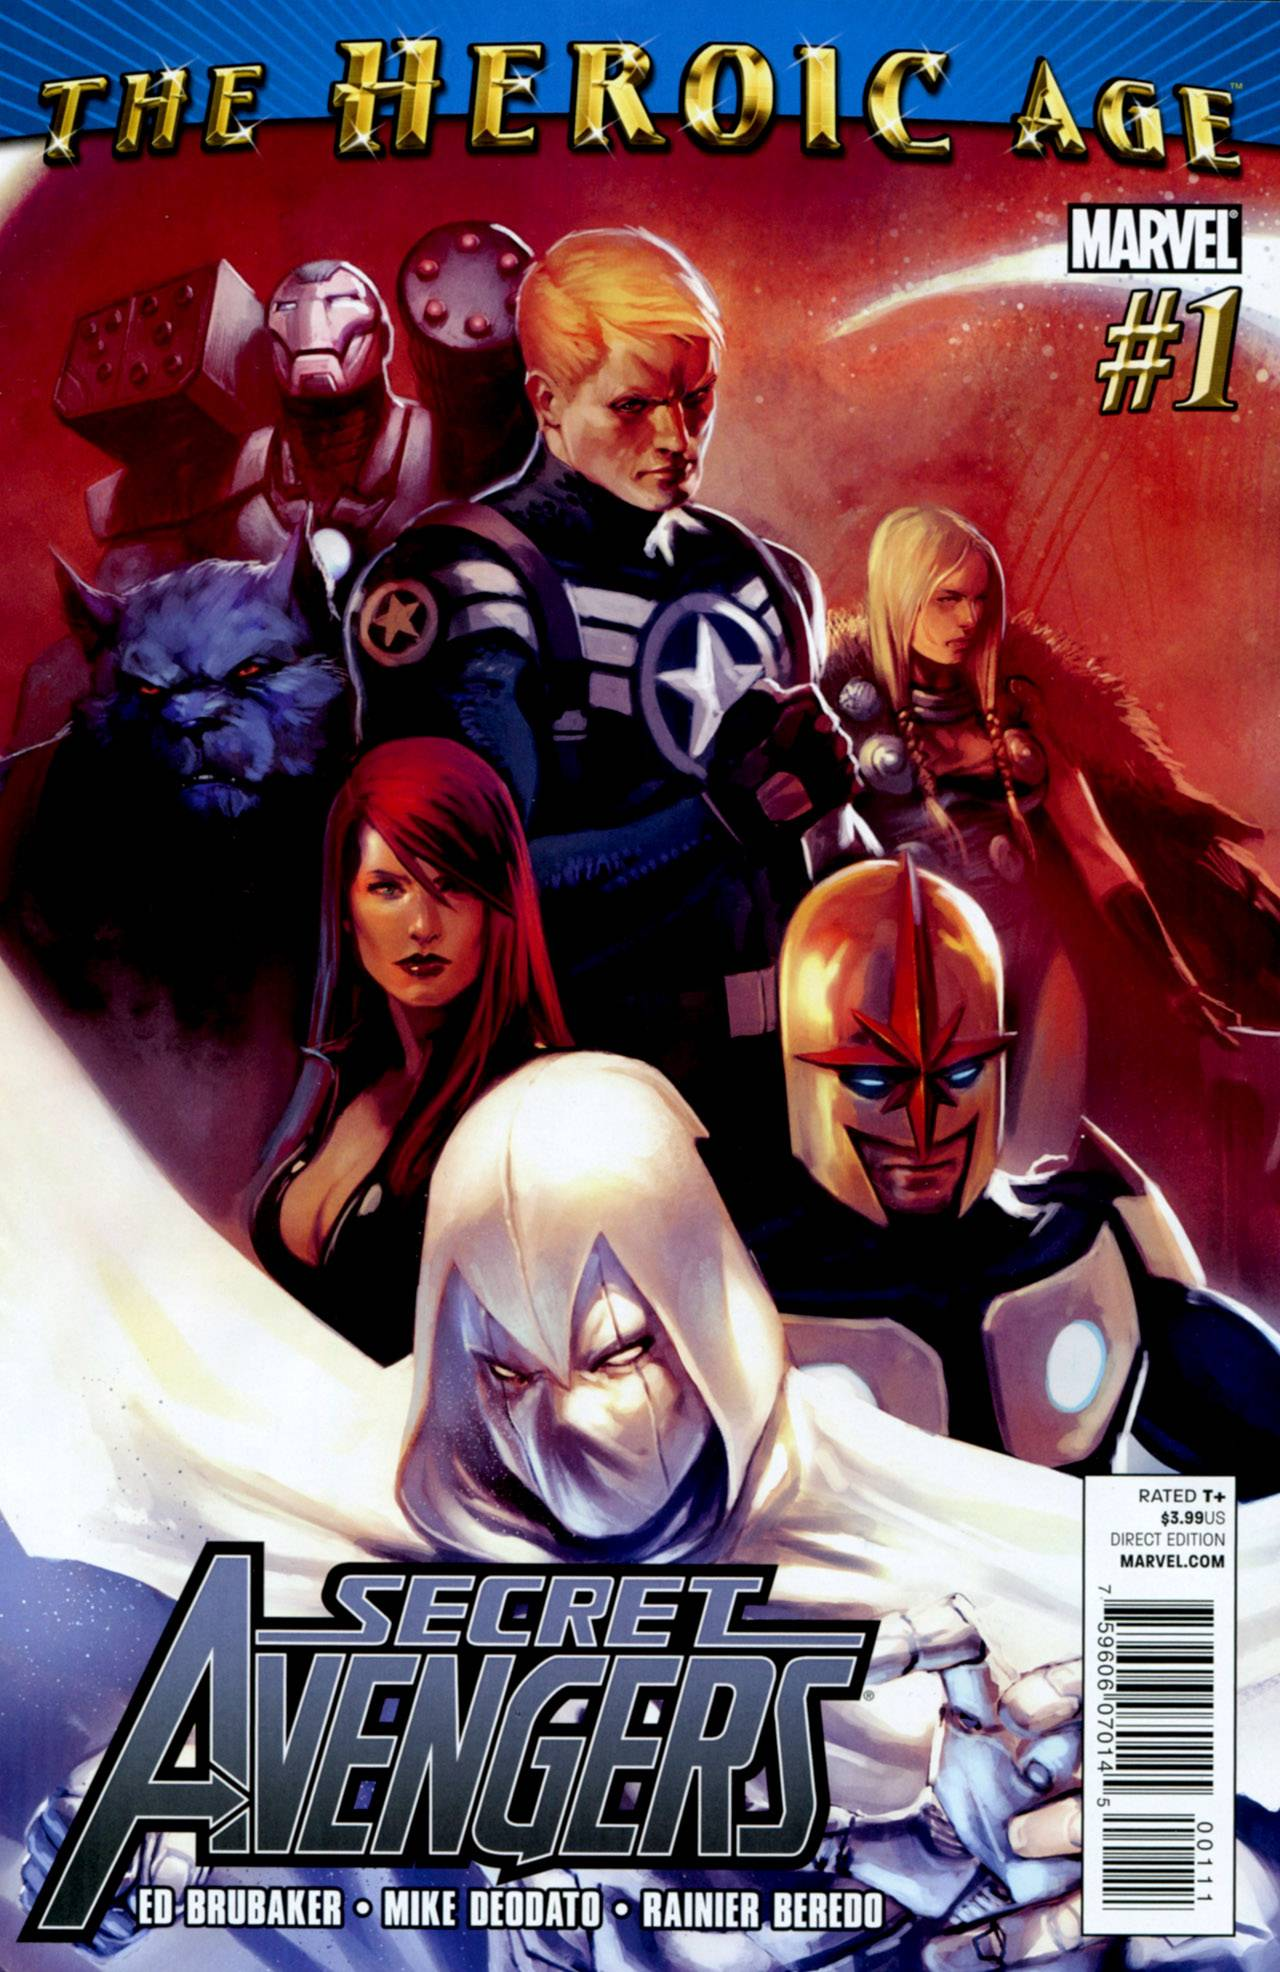 SecretAvengers1 ComixWeekly #2